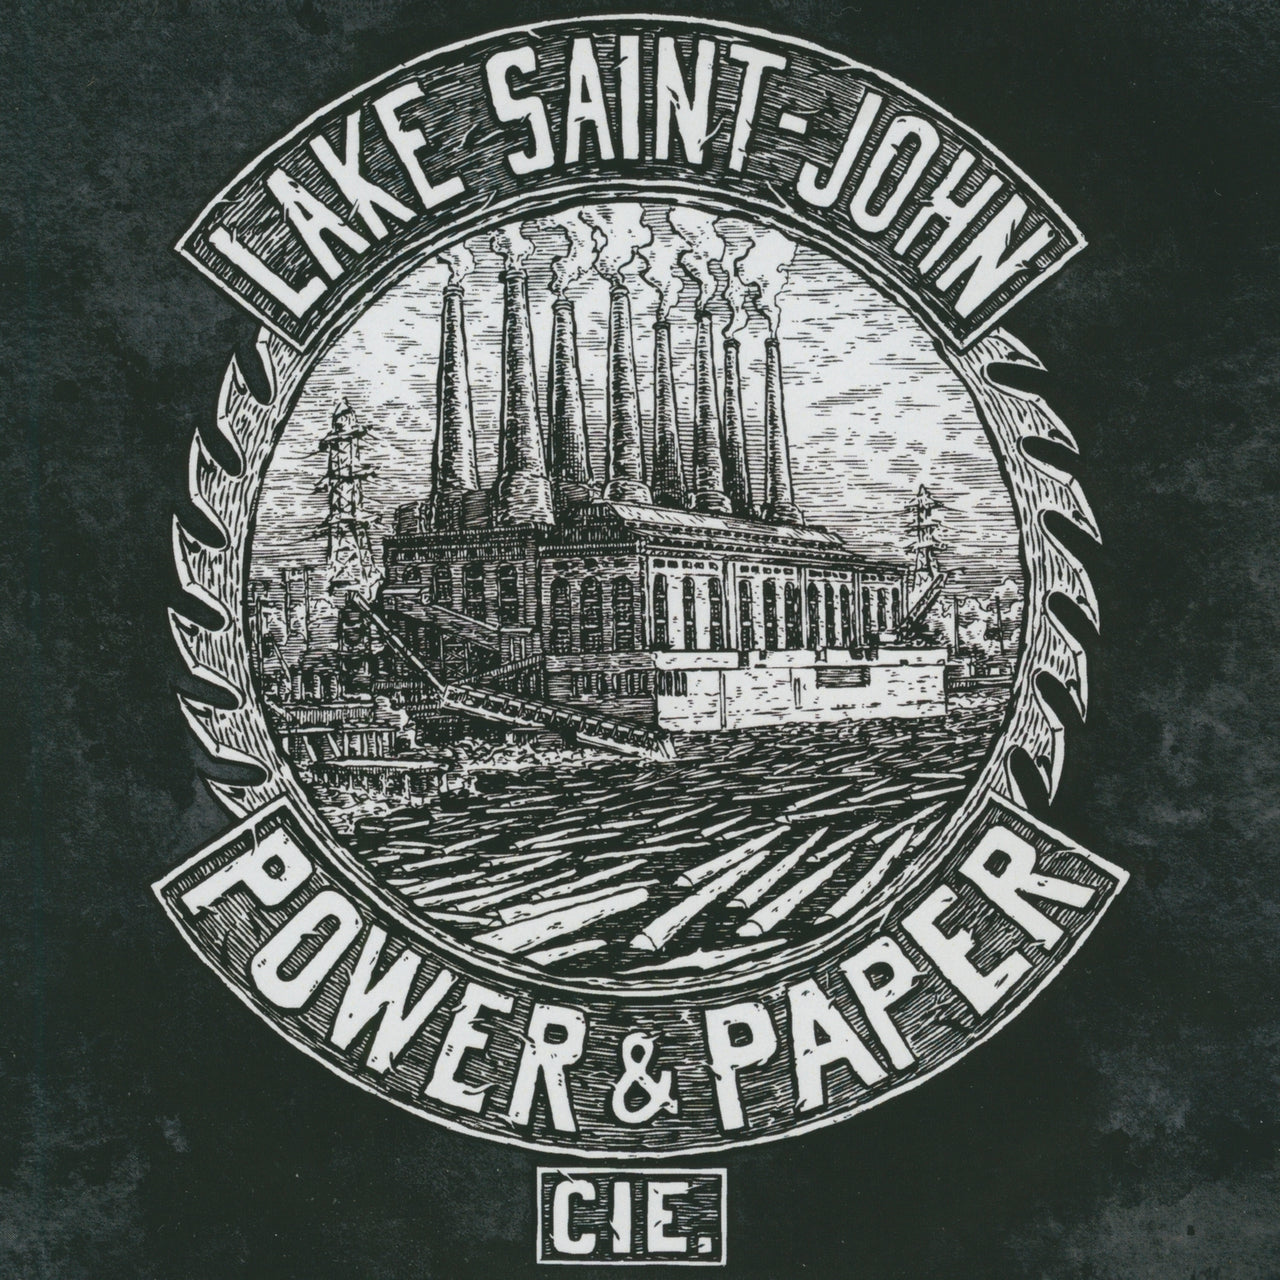 Lake Saint-John Power & Paper Cie. : Lake Saint-Jo